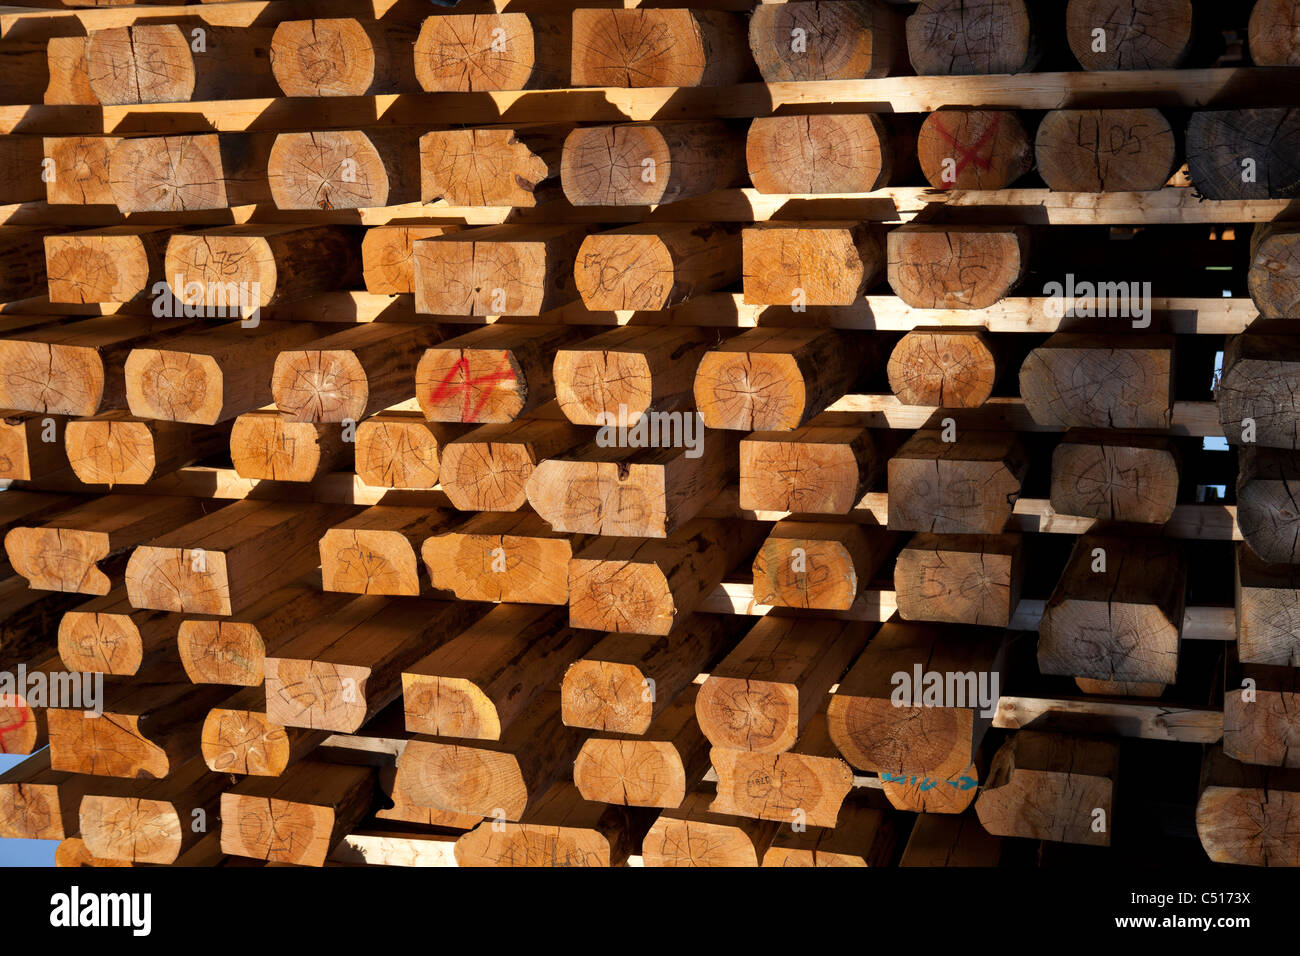 Wooden planks stacked in order with a radiant warmth from the remainder of the sunset - Stock Image